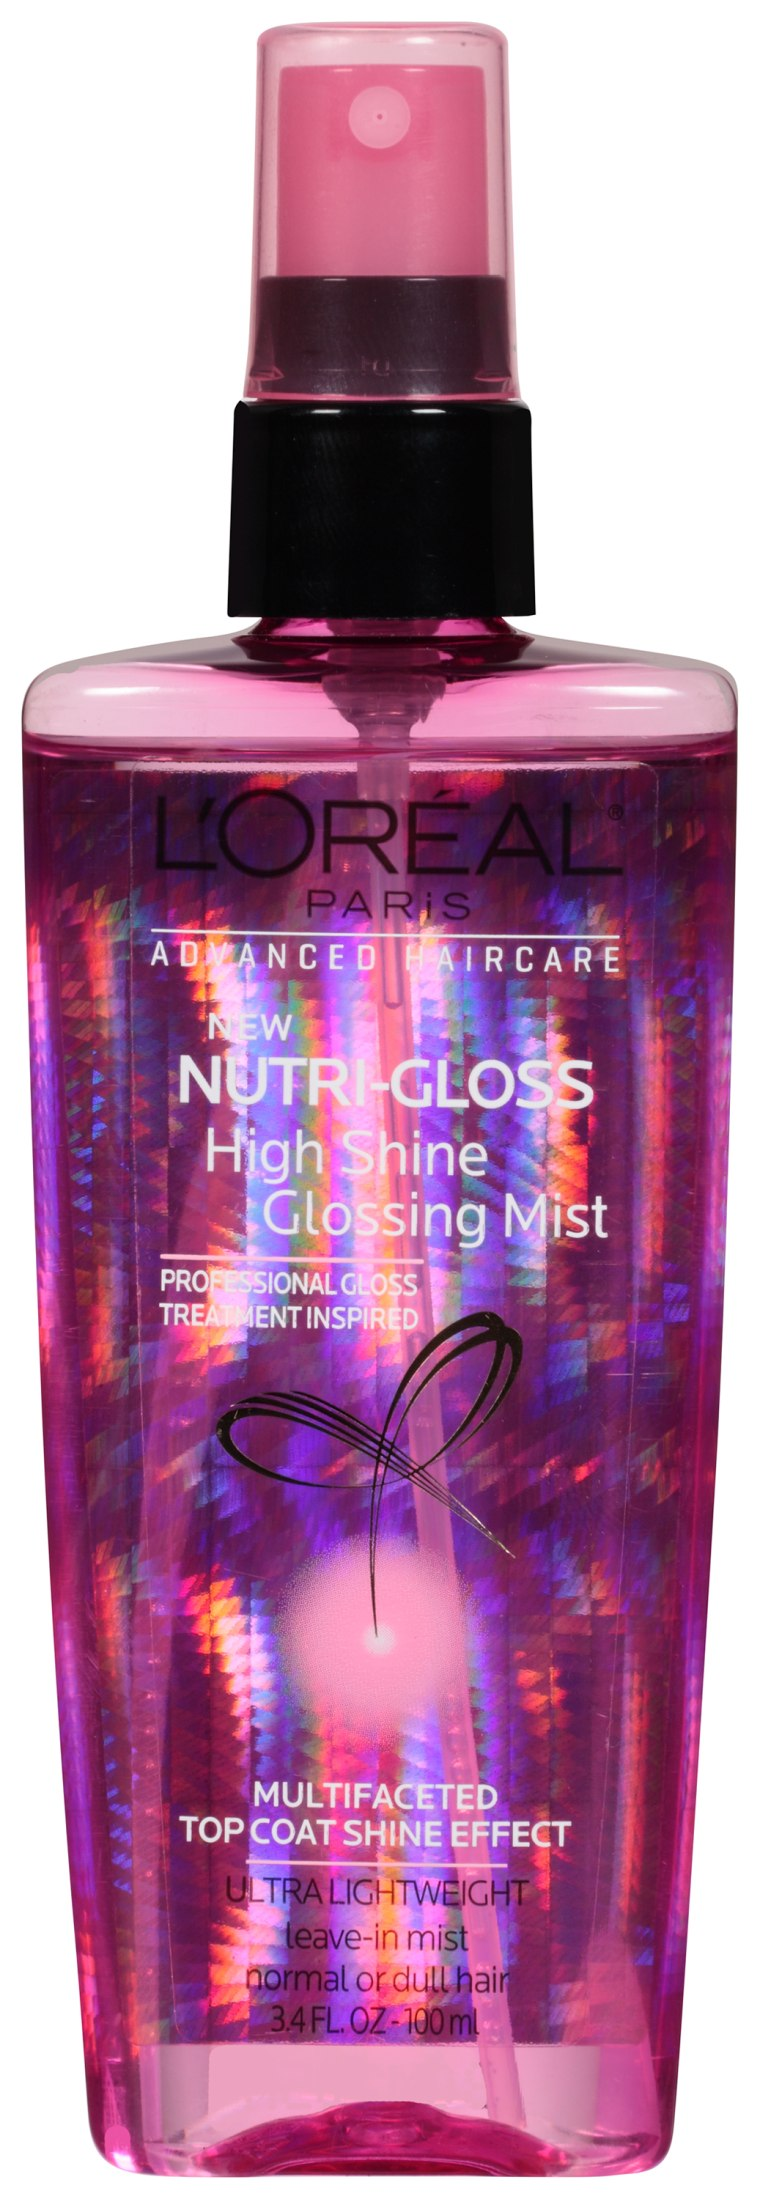 L'Oreal Paris Hair Expert Nutri-Gloss High Shine Glossing Mist